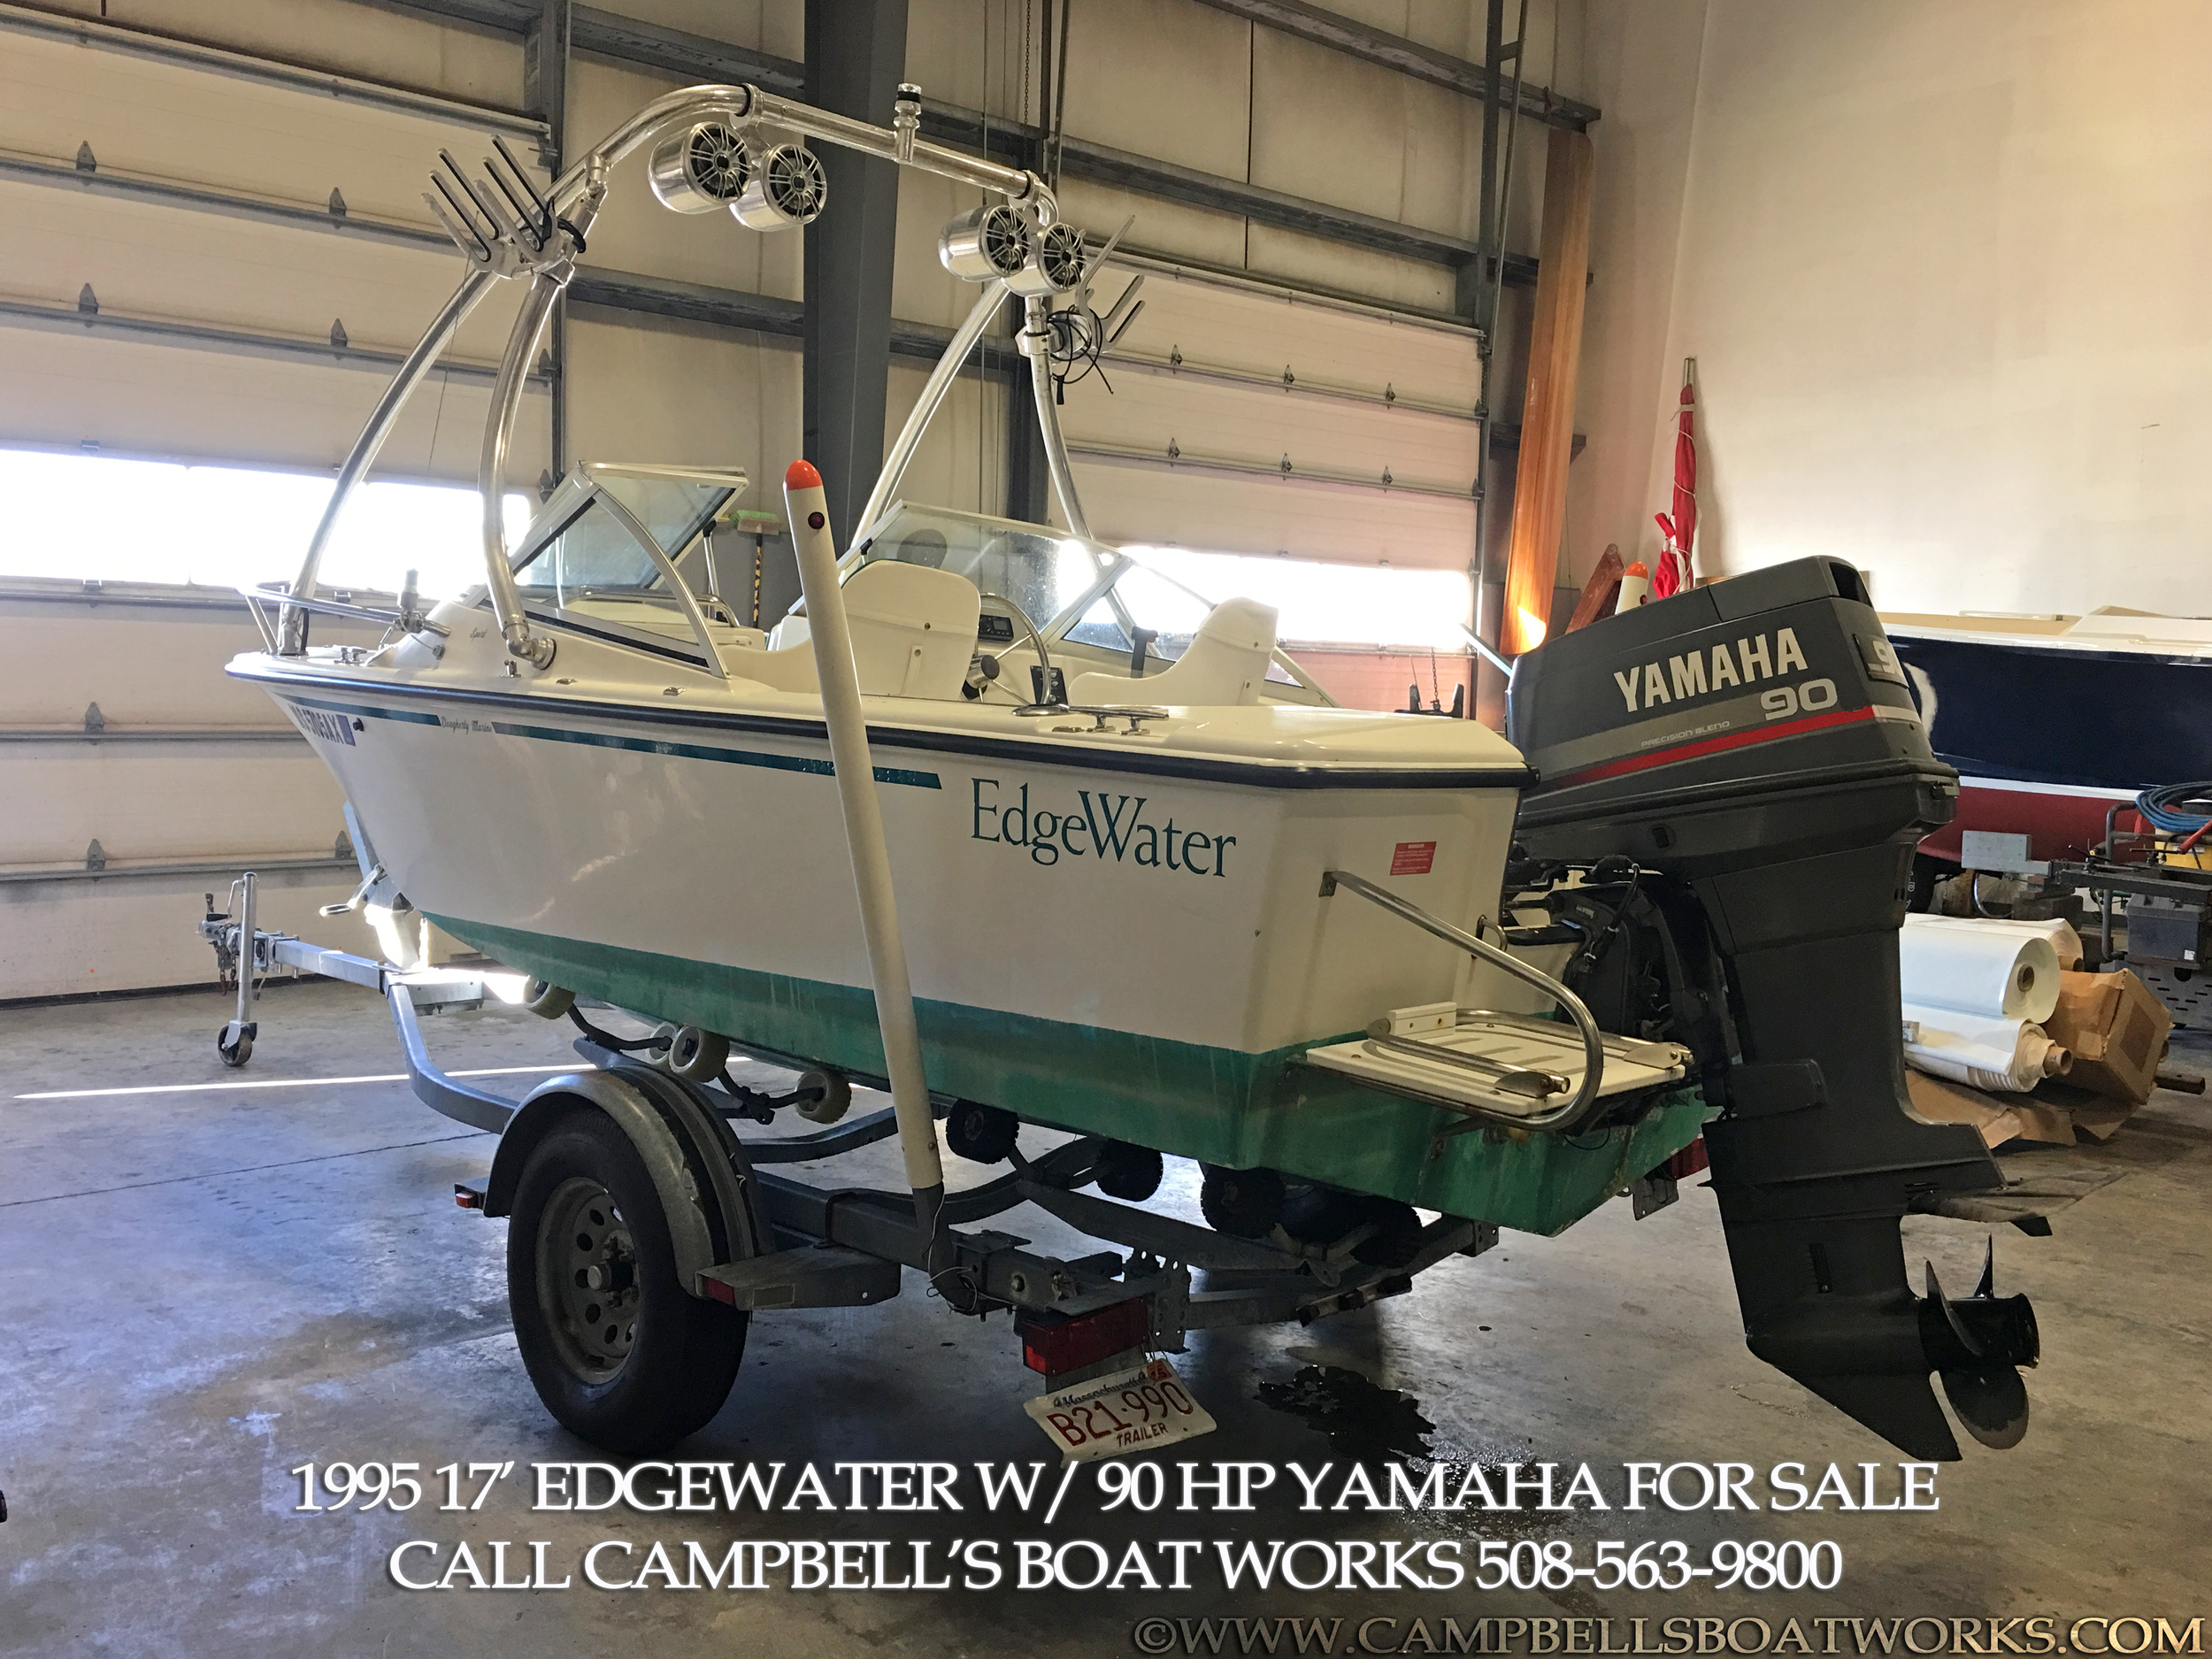 edgewater-17-boat-for-sale-yamaha-outboard-trailer.png